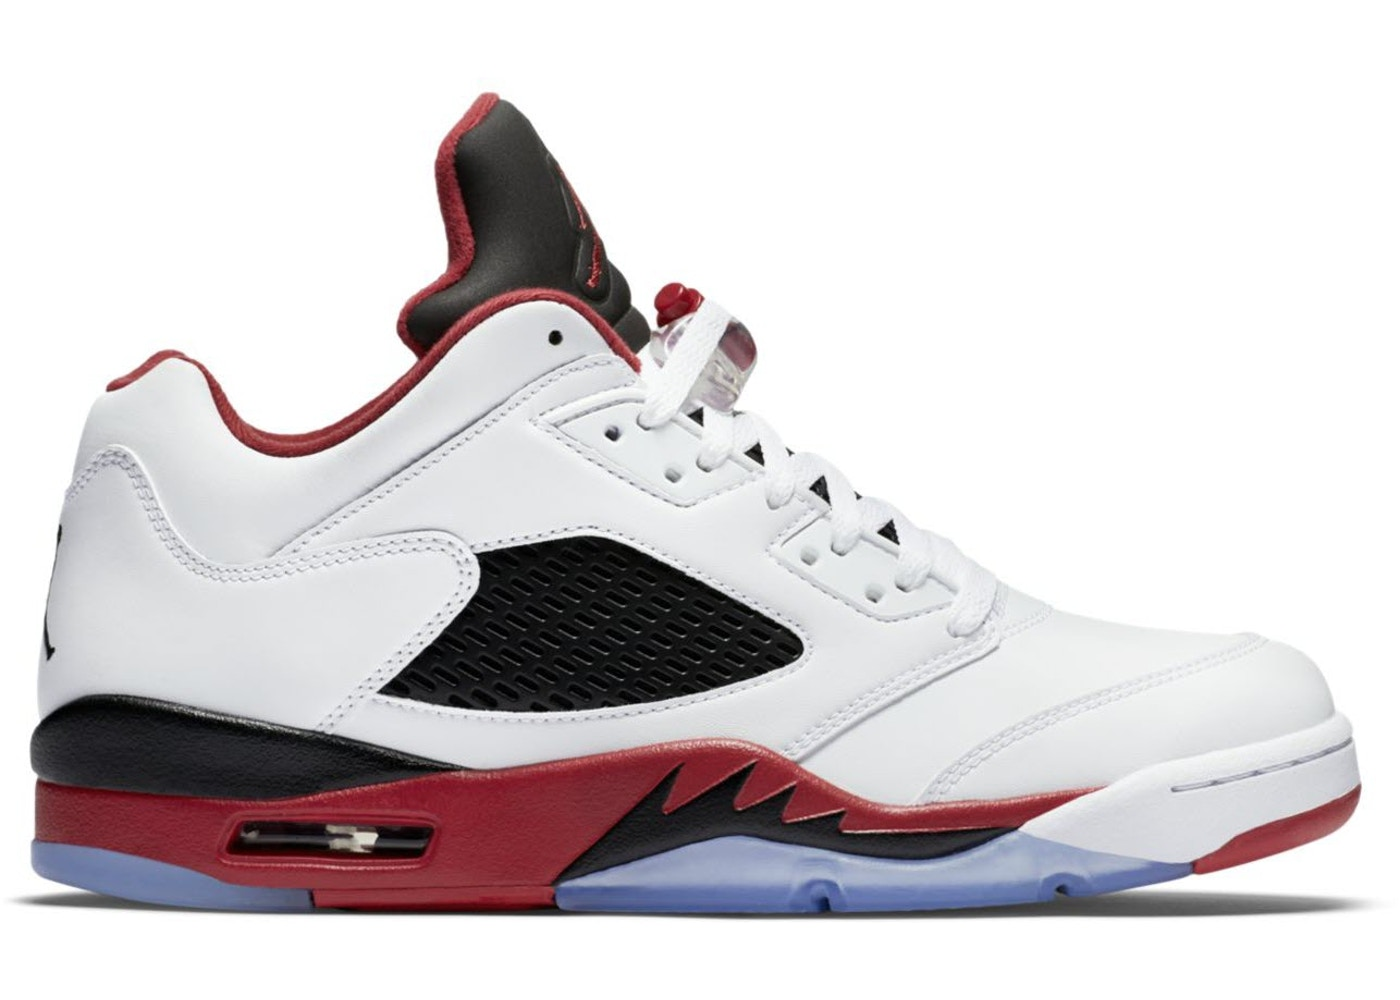 the latest 83aff 4a4be Buy Air Jordan 5 Shoes   Deadstock Sneakers